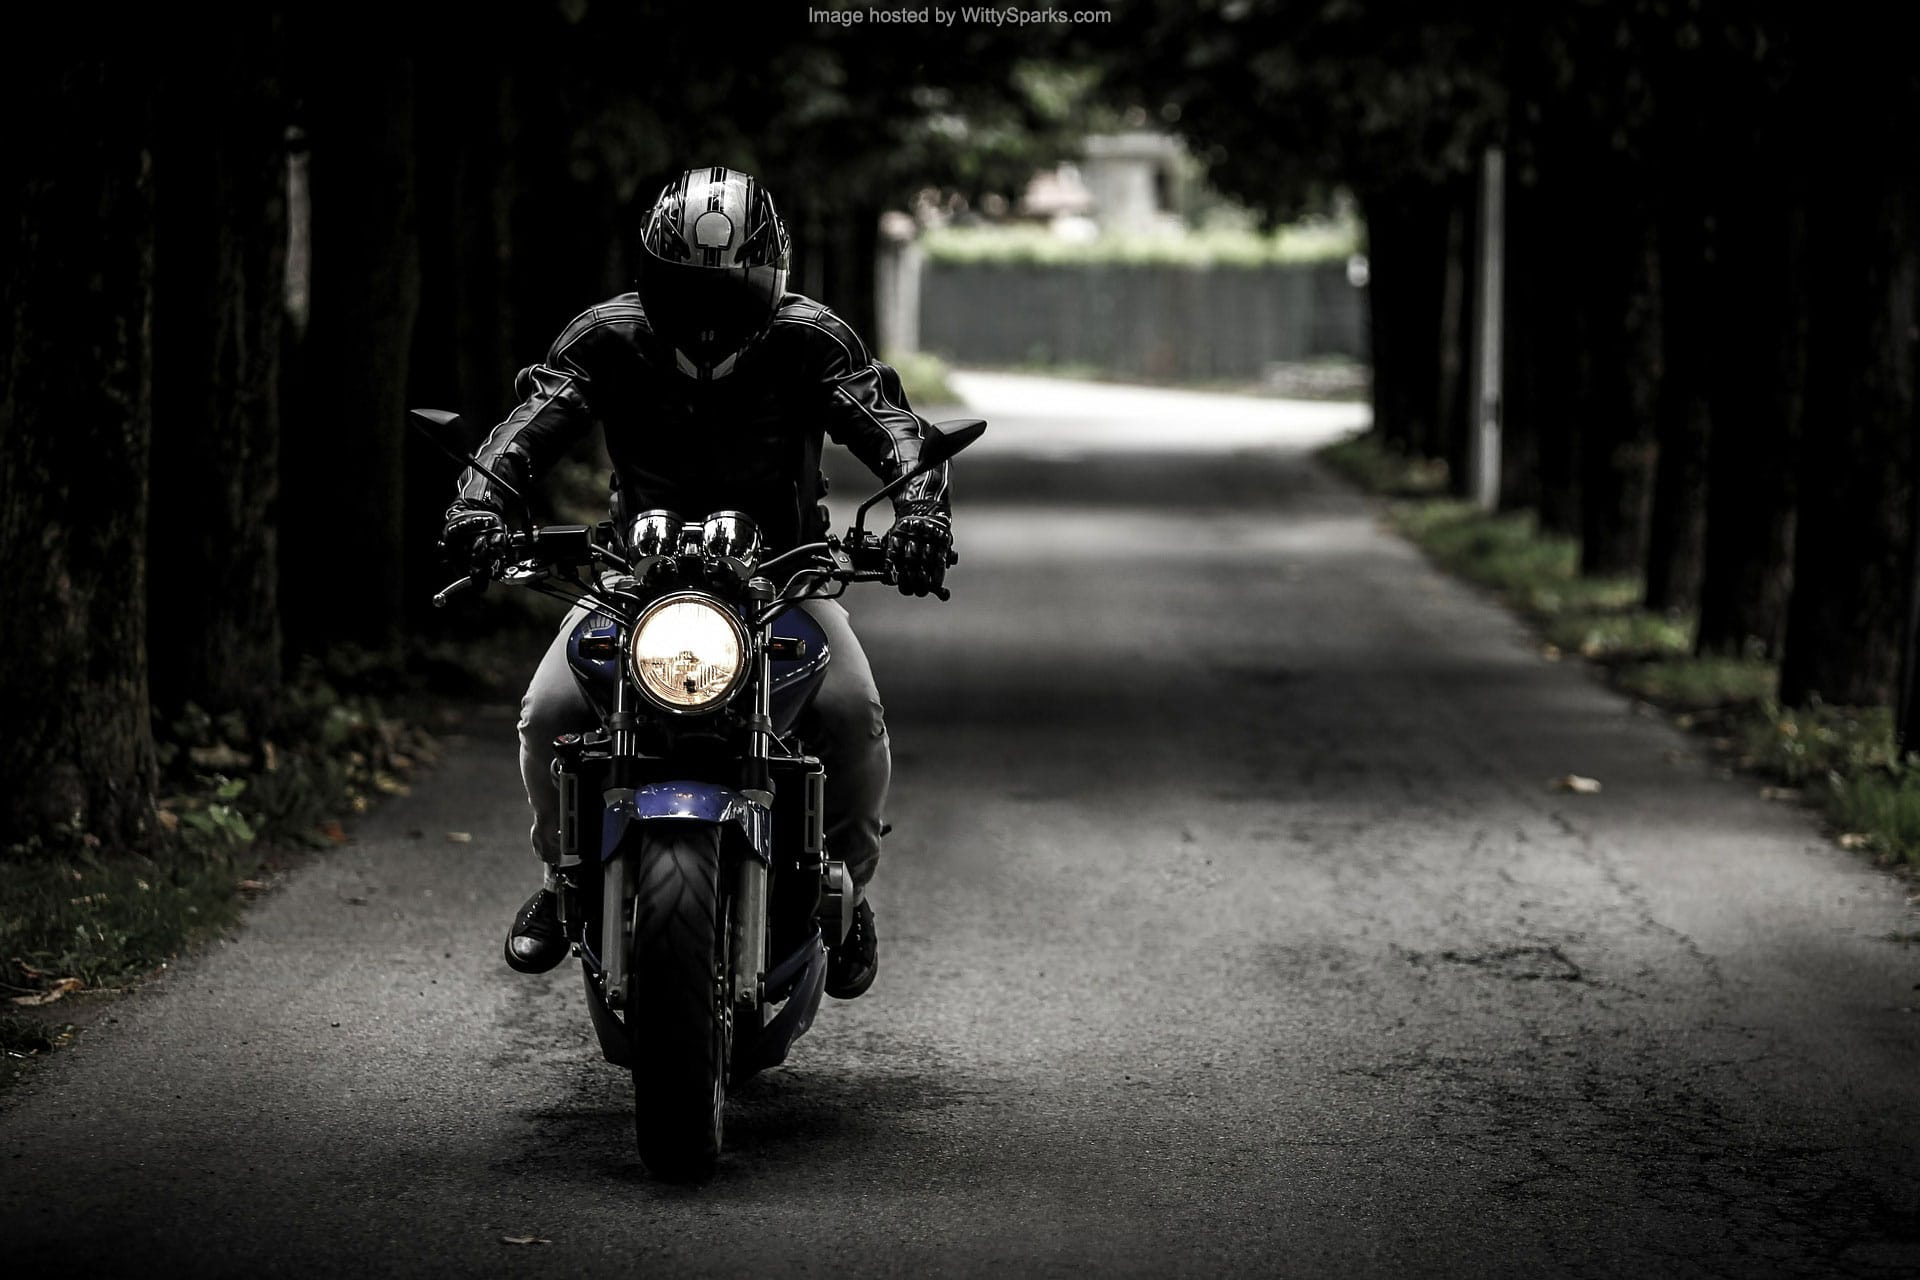 Safety tips for bike riders